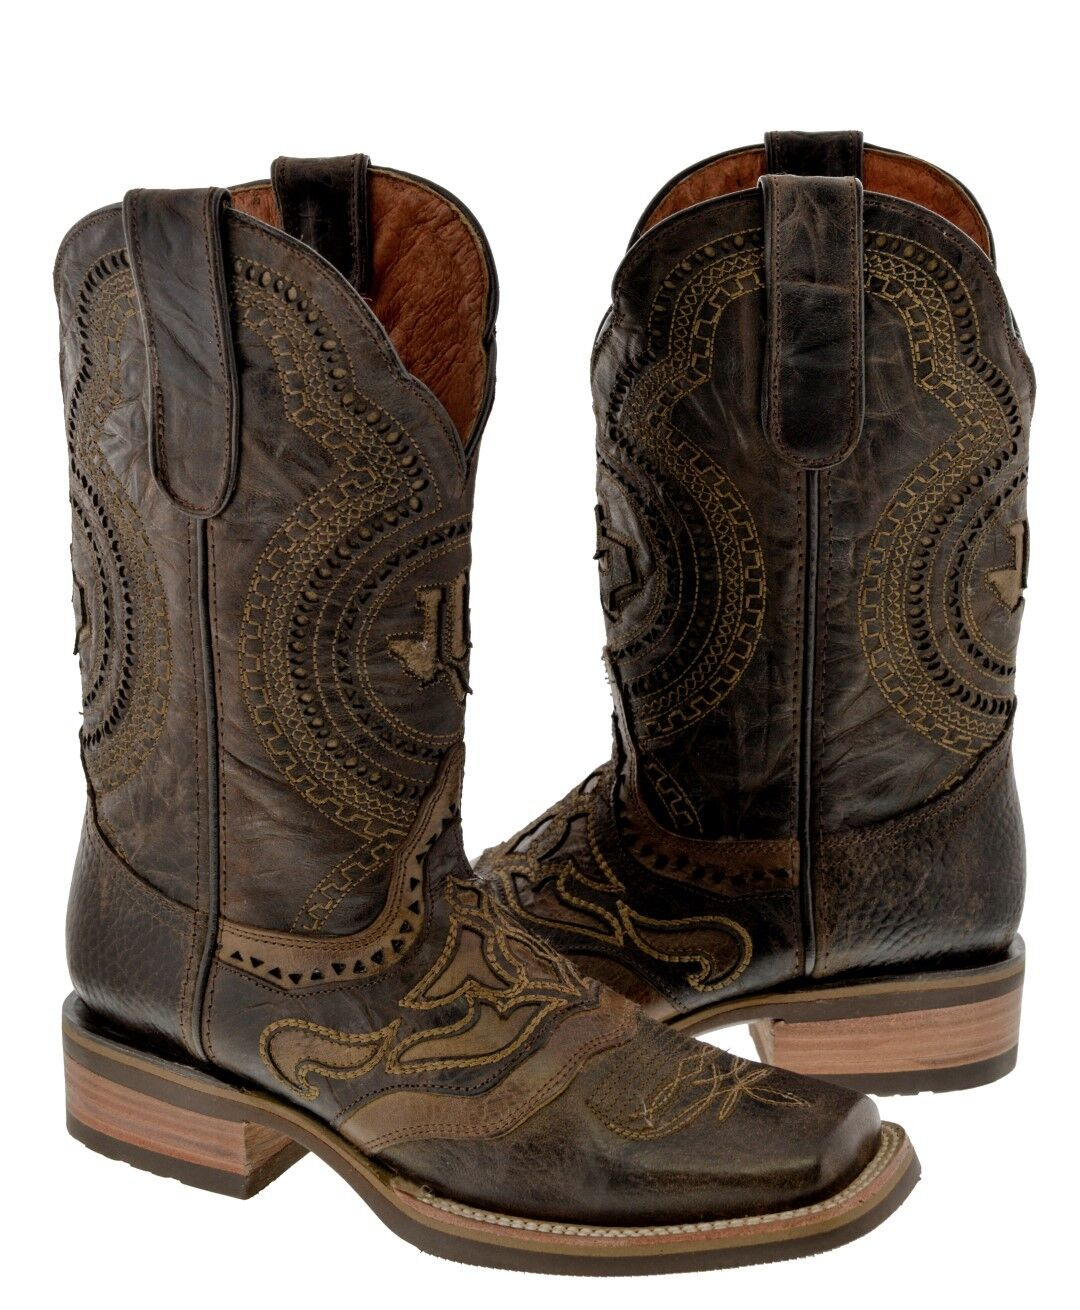 Mens Rodeo Brown Overlay Stitched Leather Cowboy Boots Riding Durable Square